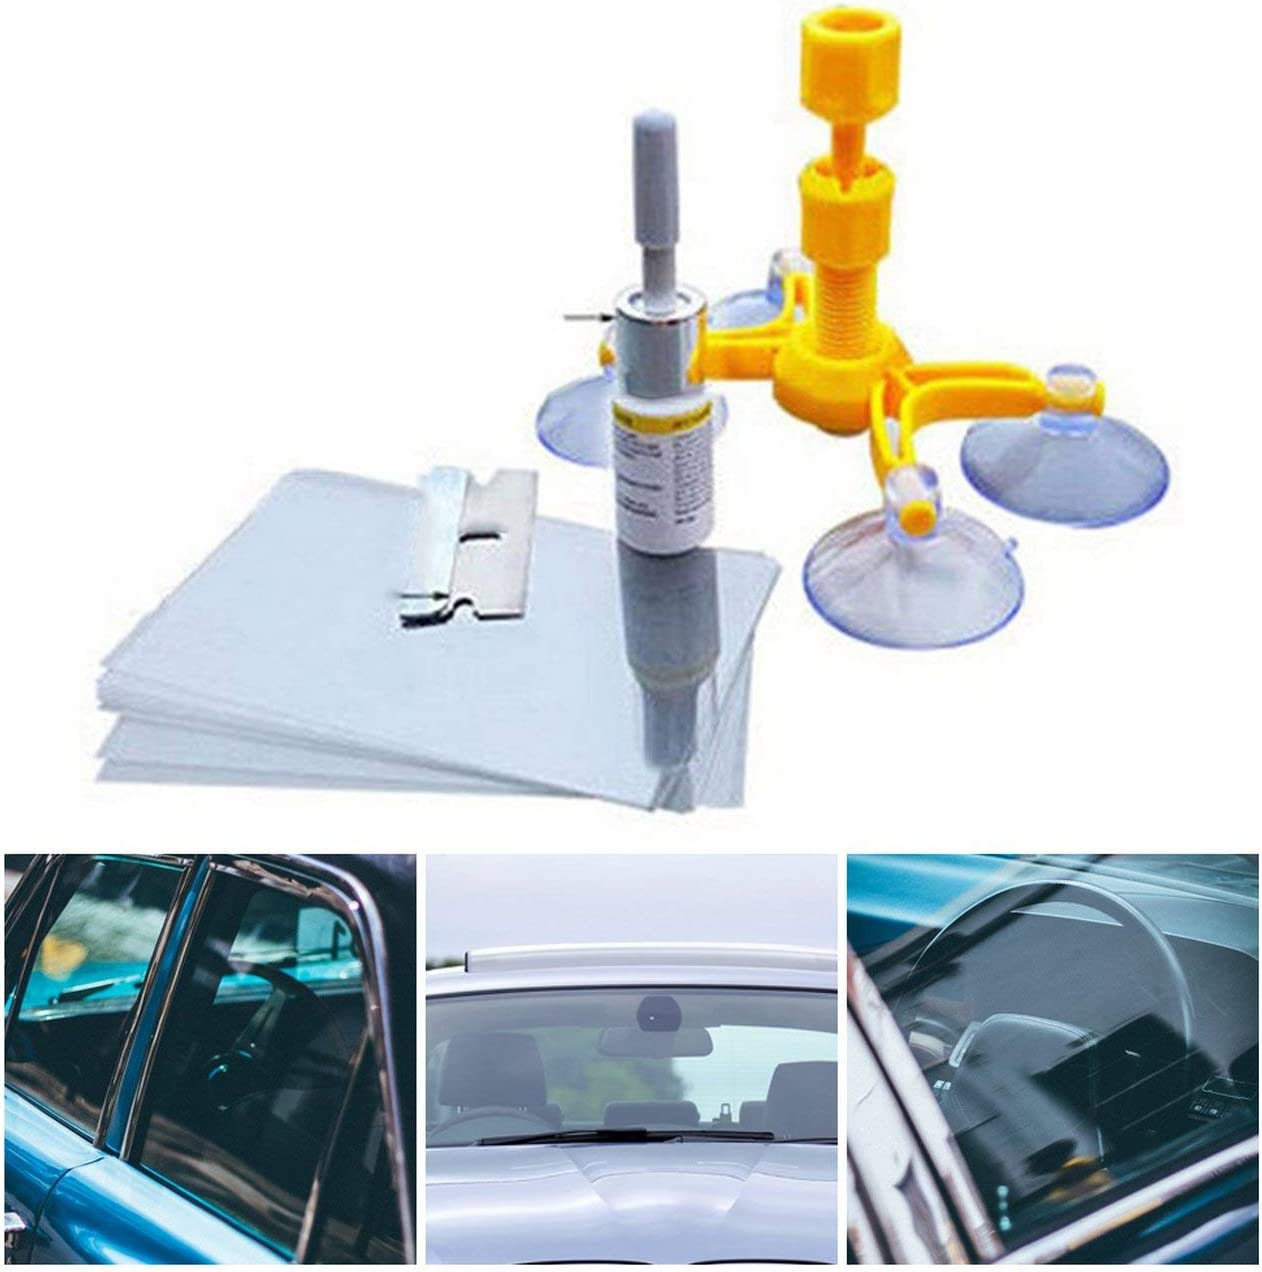 DIY Windshield Repair Kits Car Window Repair Tools Glass Scratches Restore Windscreen Cracks Polishing Repair Tool Set Orange